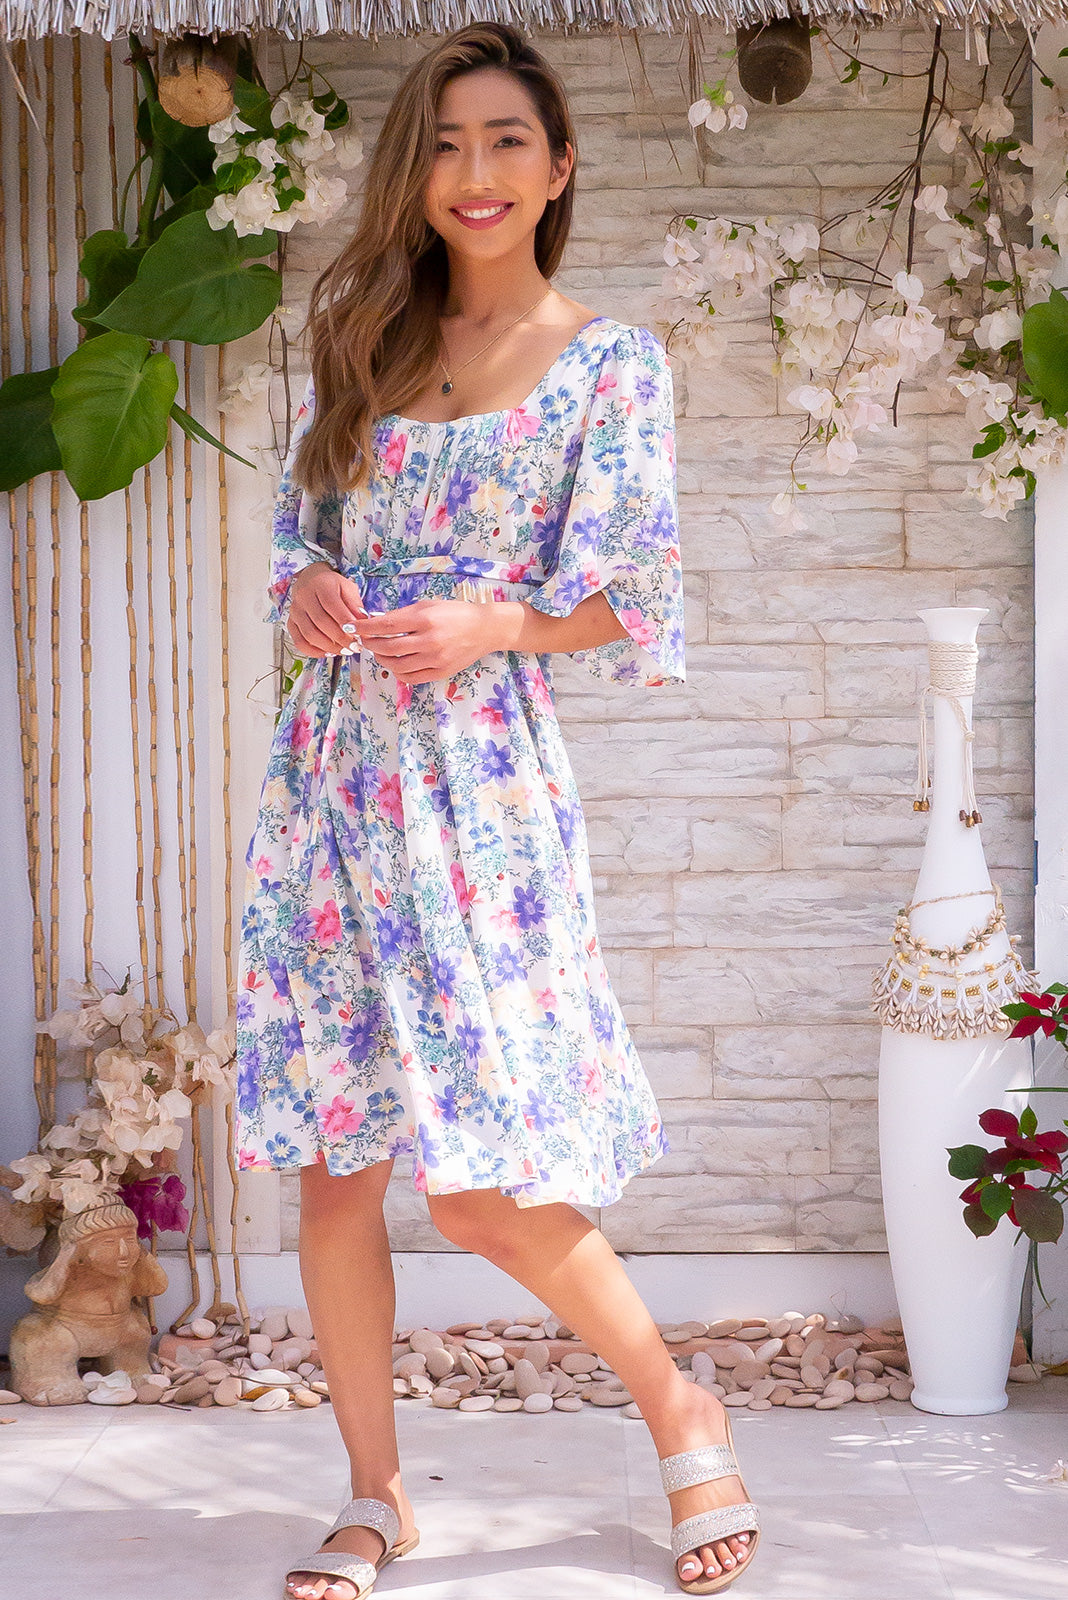 Canterbury Airy Fairy White Dress in floral print with square neckline, flutter sleeves, empire line cut and side pockets.